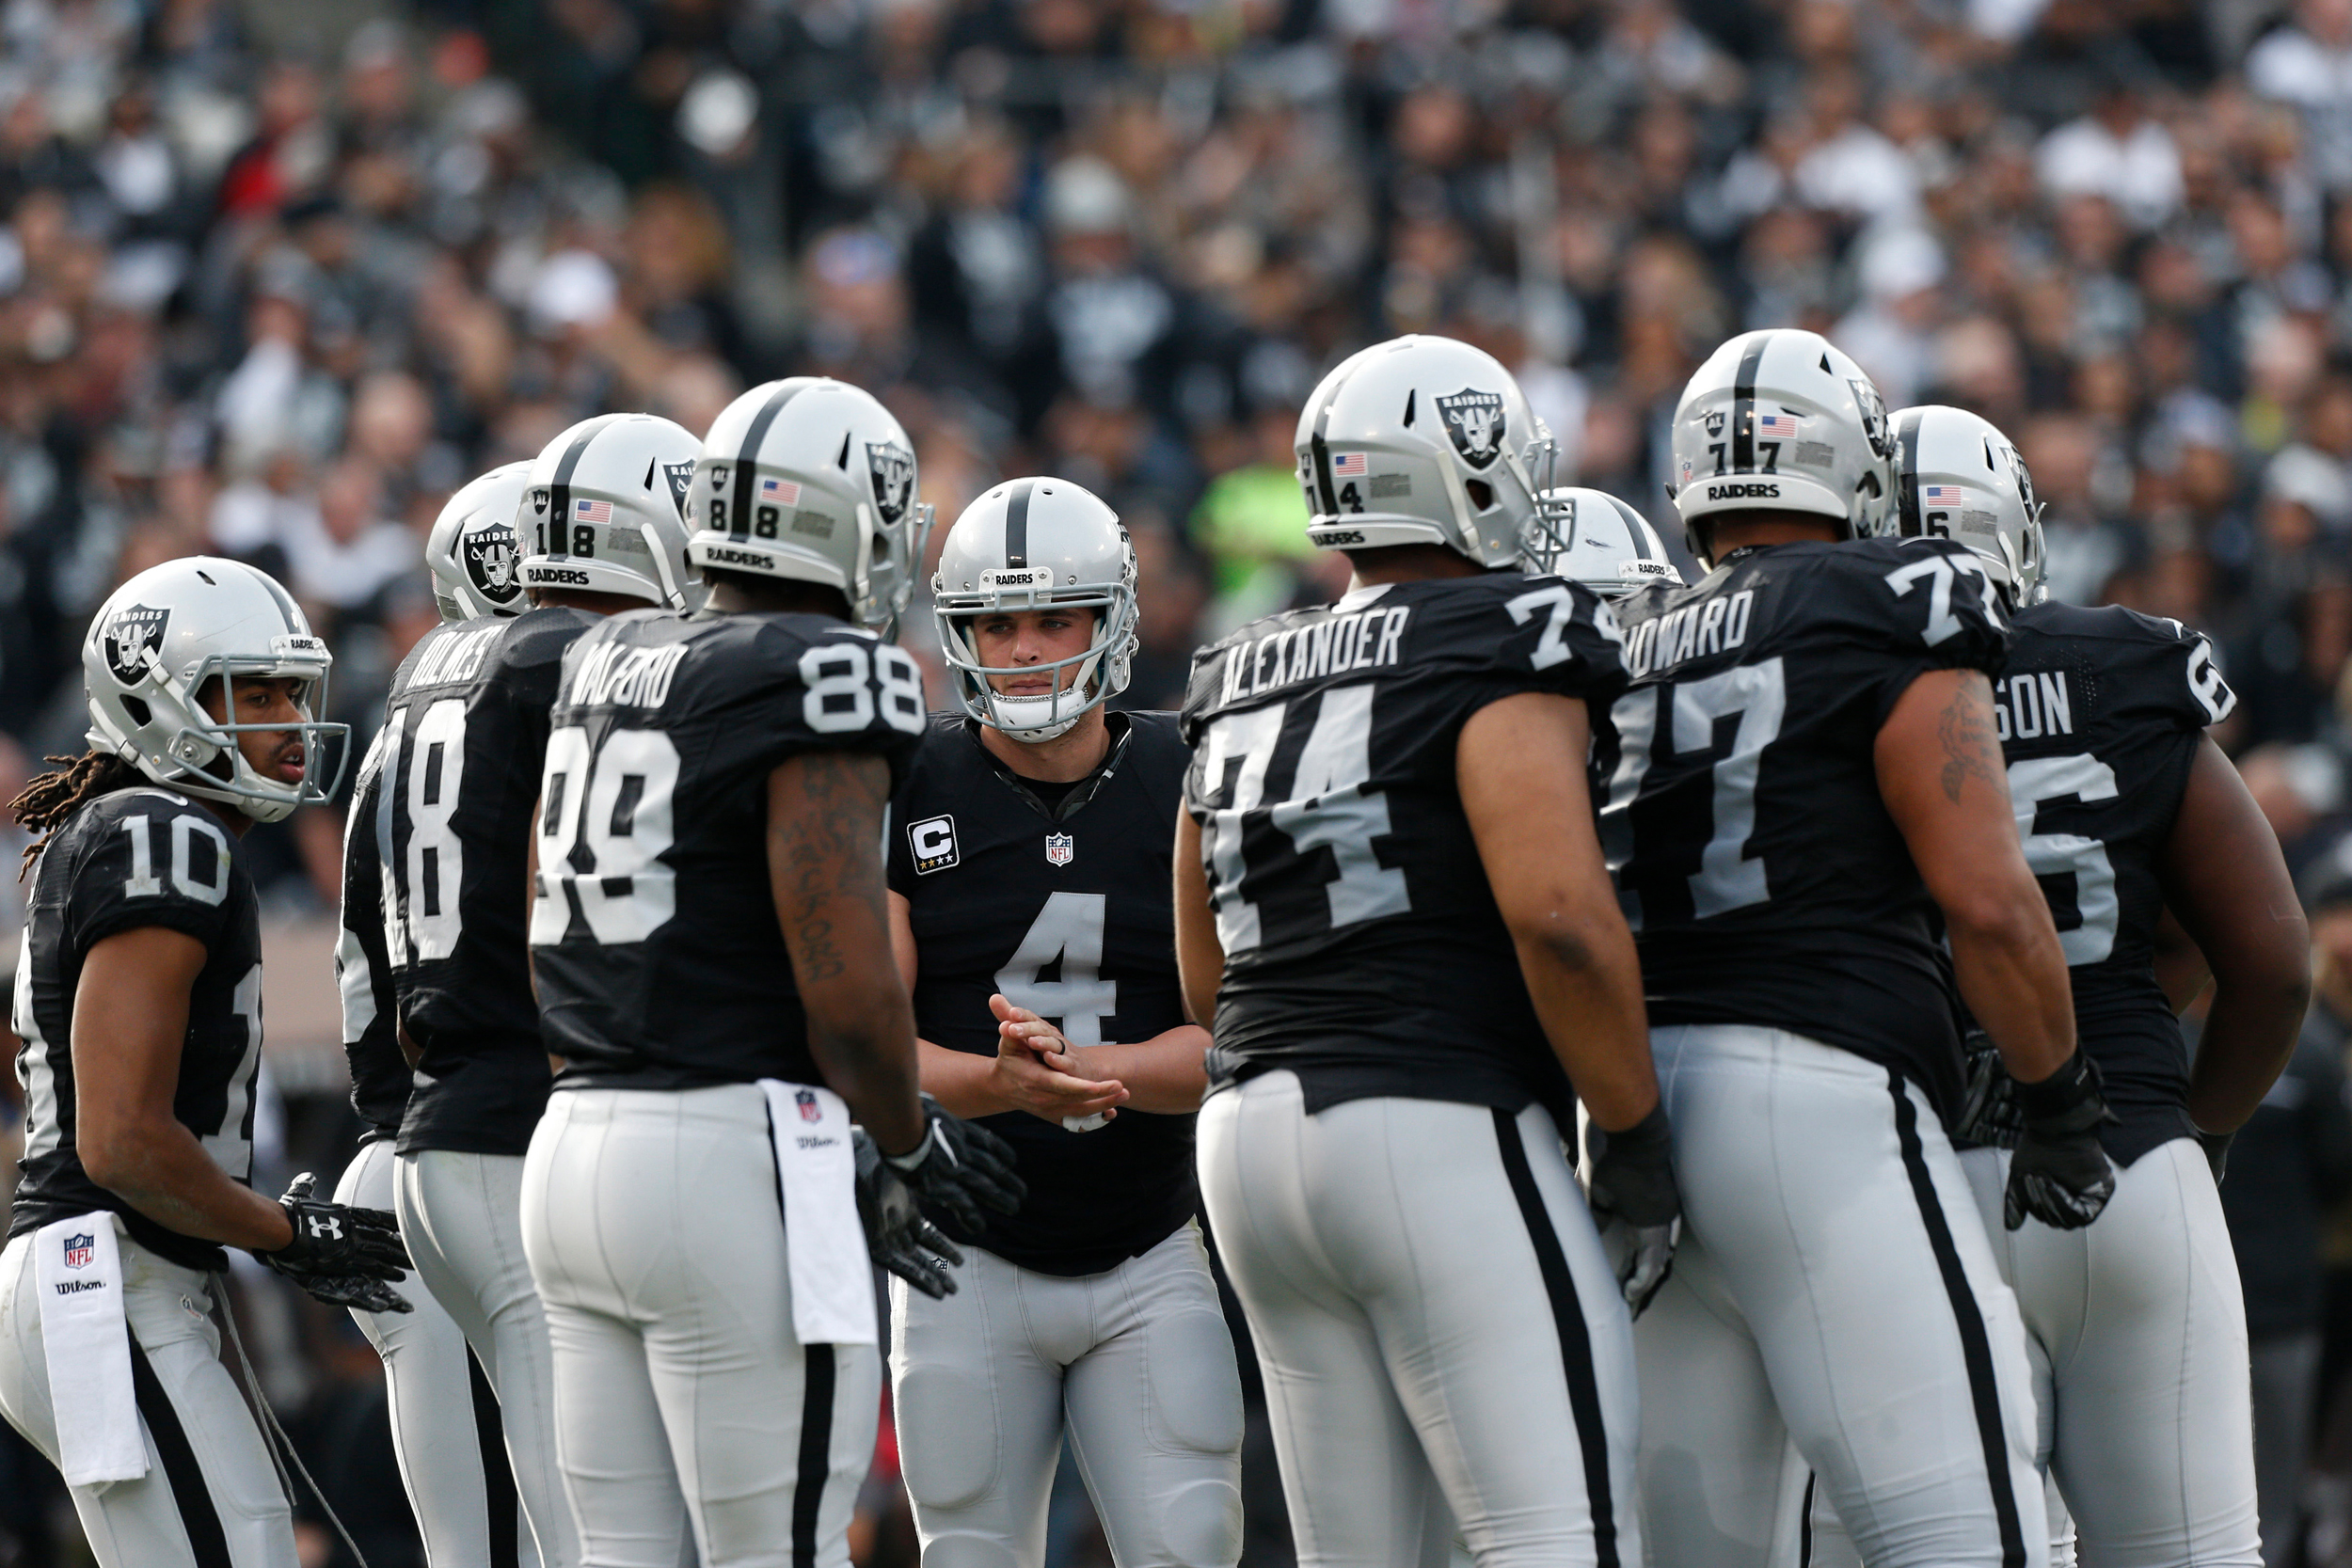 Oakland Raiders quarterback Derek Carr (4) stands in the team huddle against the Buffalo Bills in the second quarter at Oakland Coliseum.